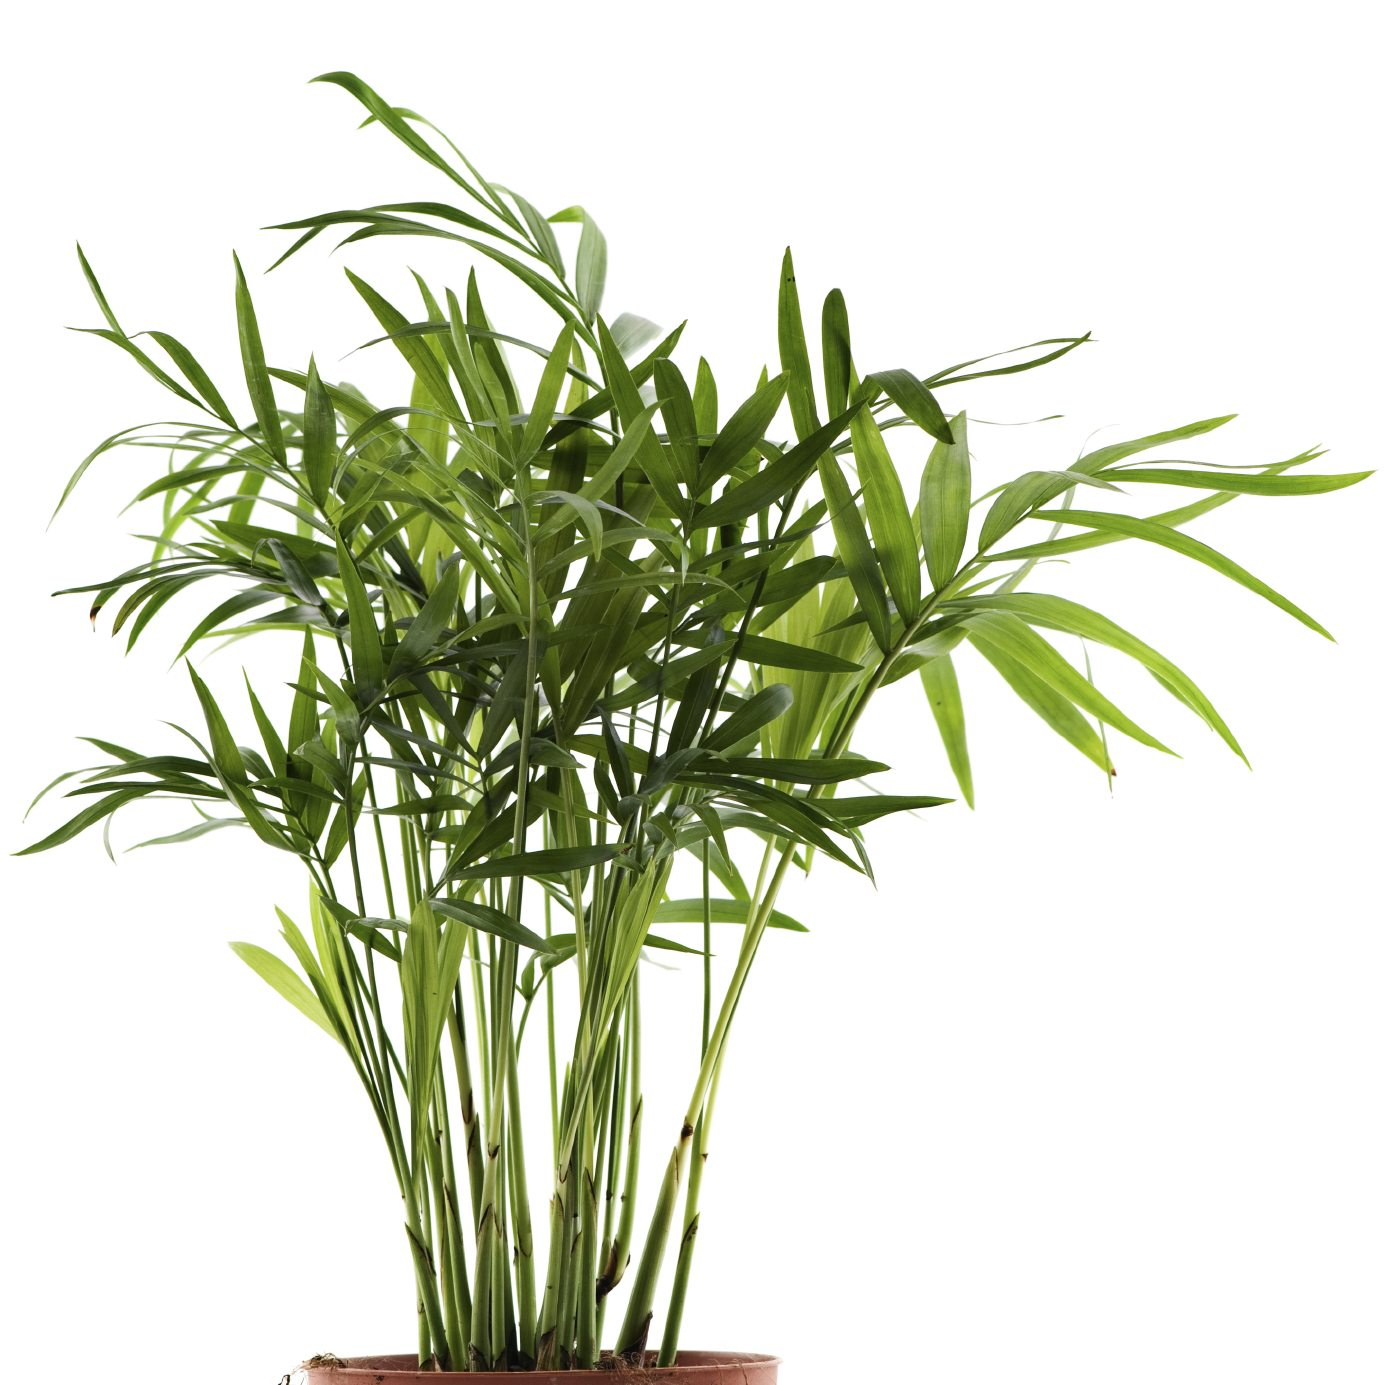 Piante Bambu Vendita : Growing palms indoors learn about bamboo palm care